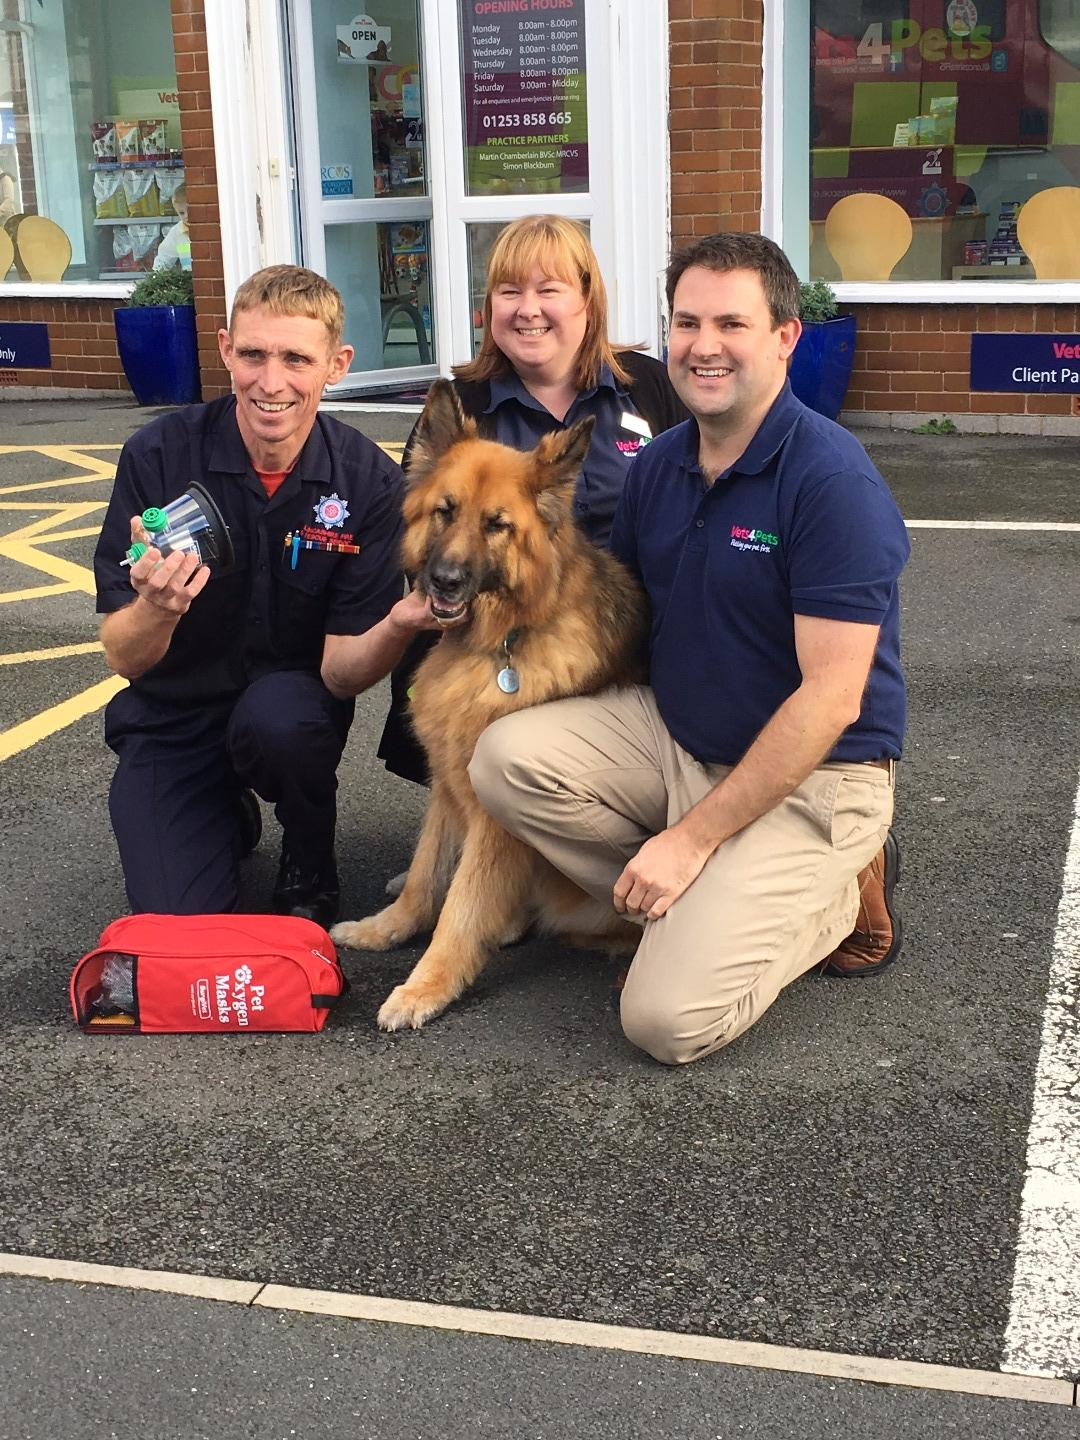 Pet resuscitation equipment donated by Vets4Pets Cleveleys